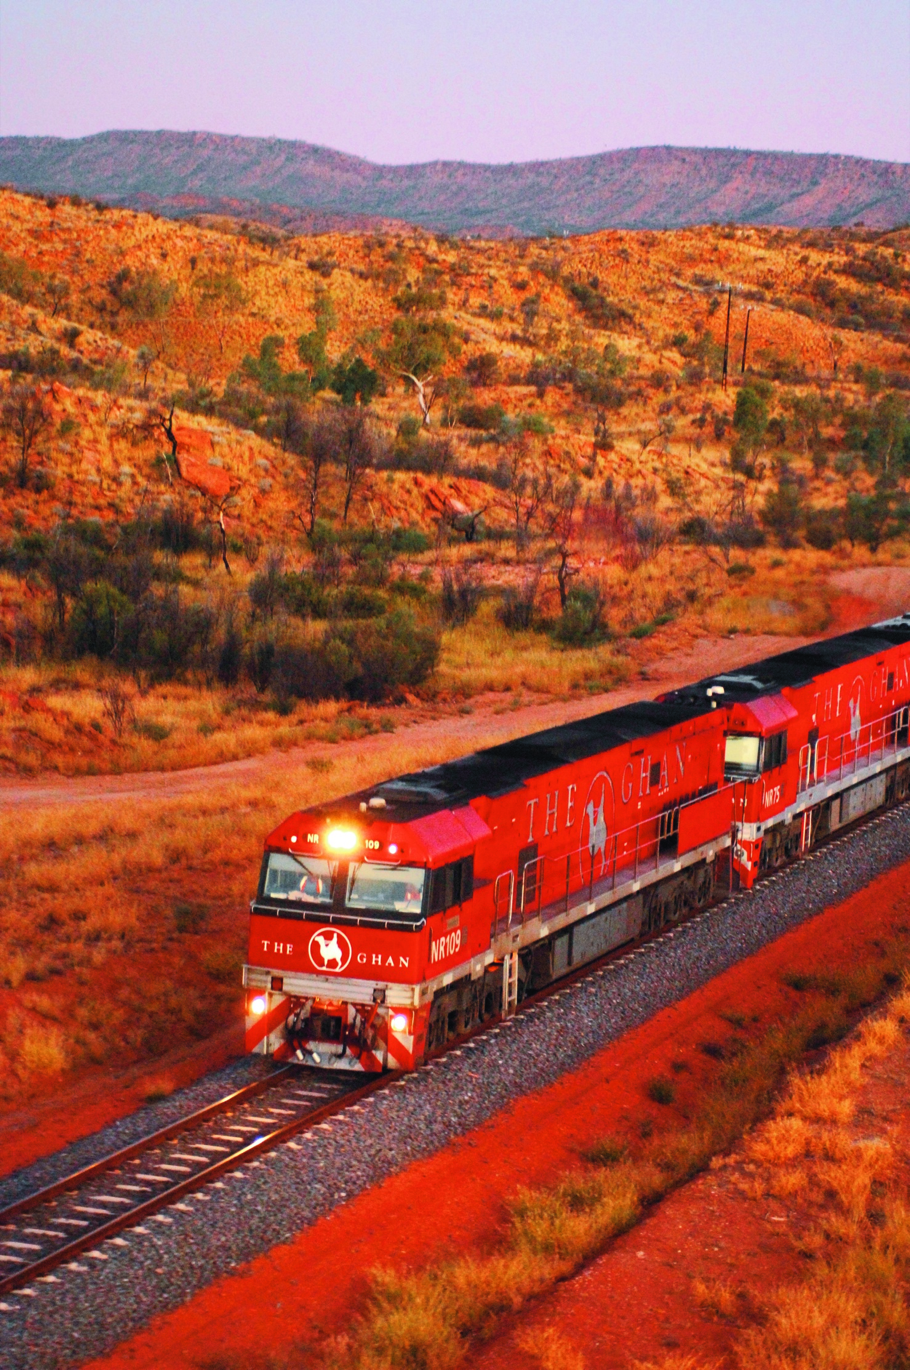 The Ghan Alice Springs to Darwin